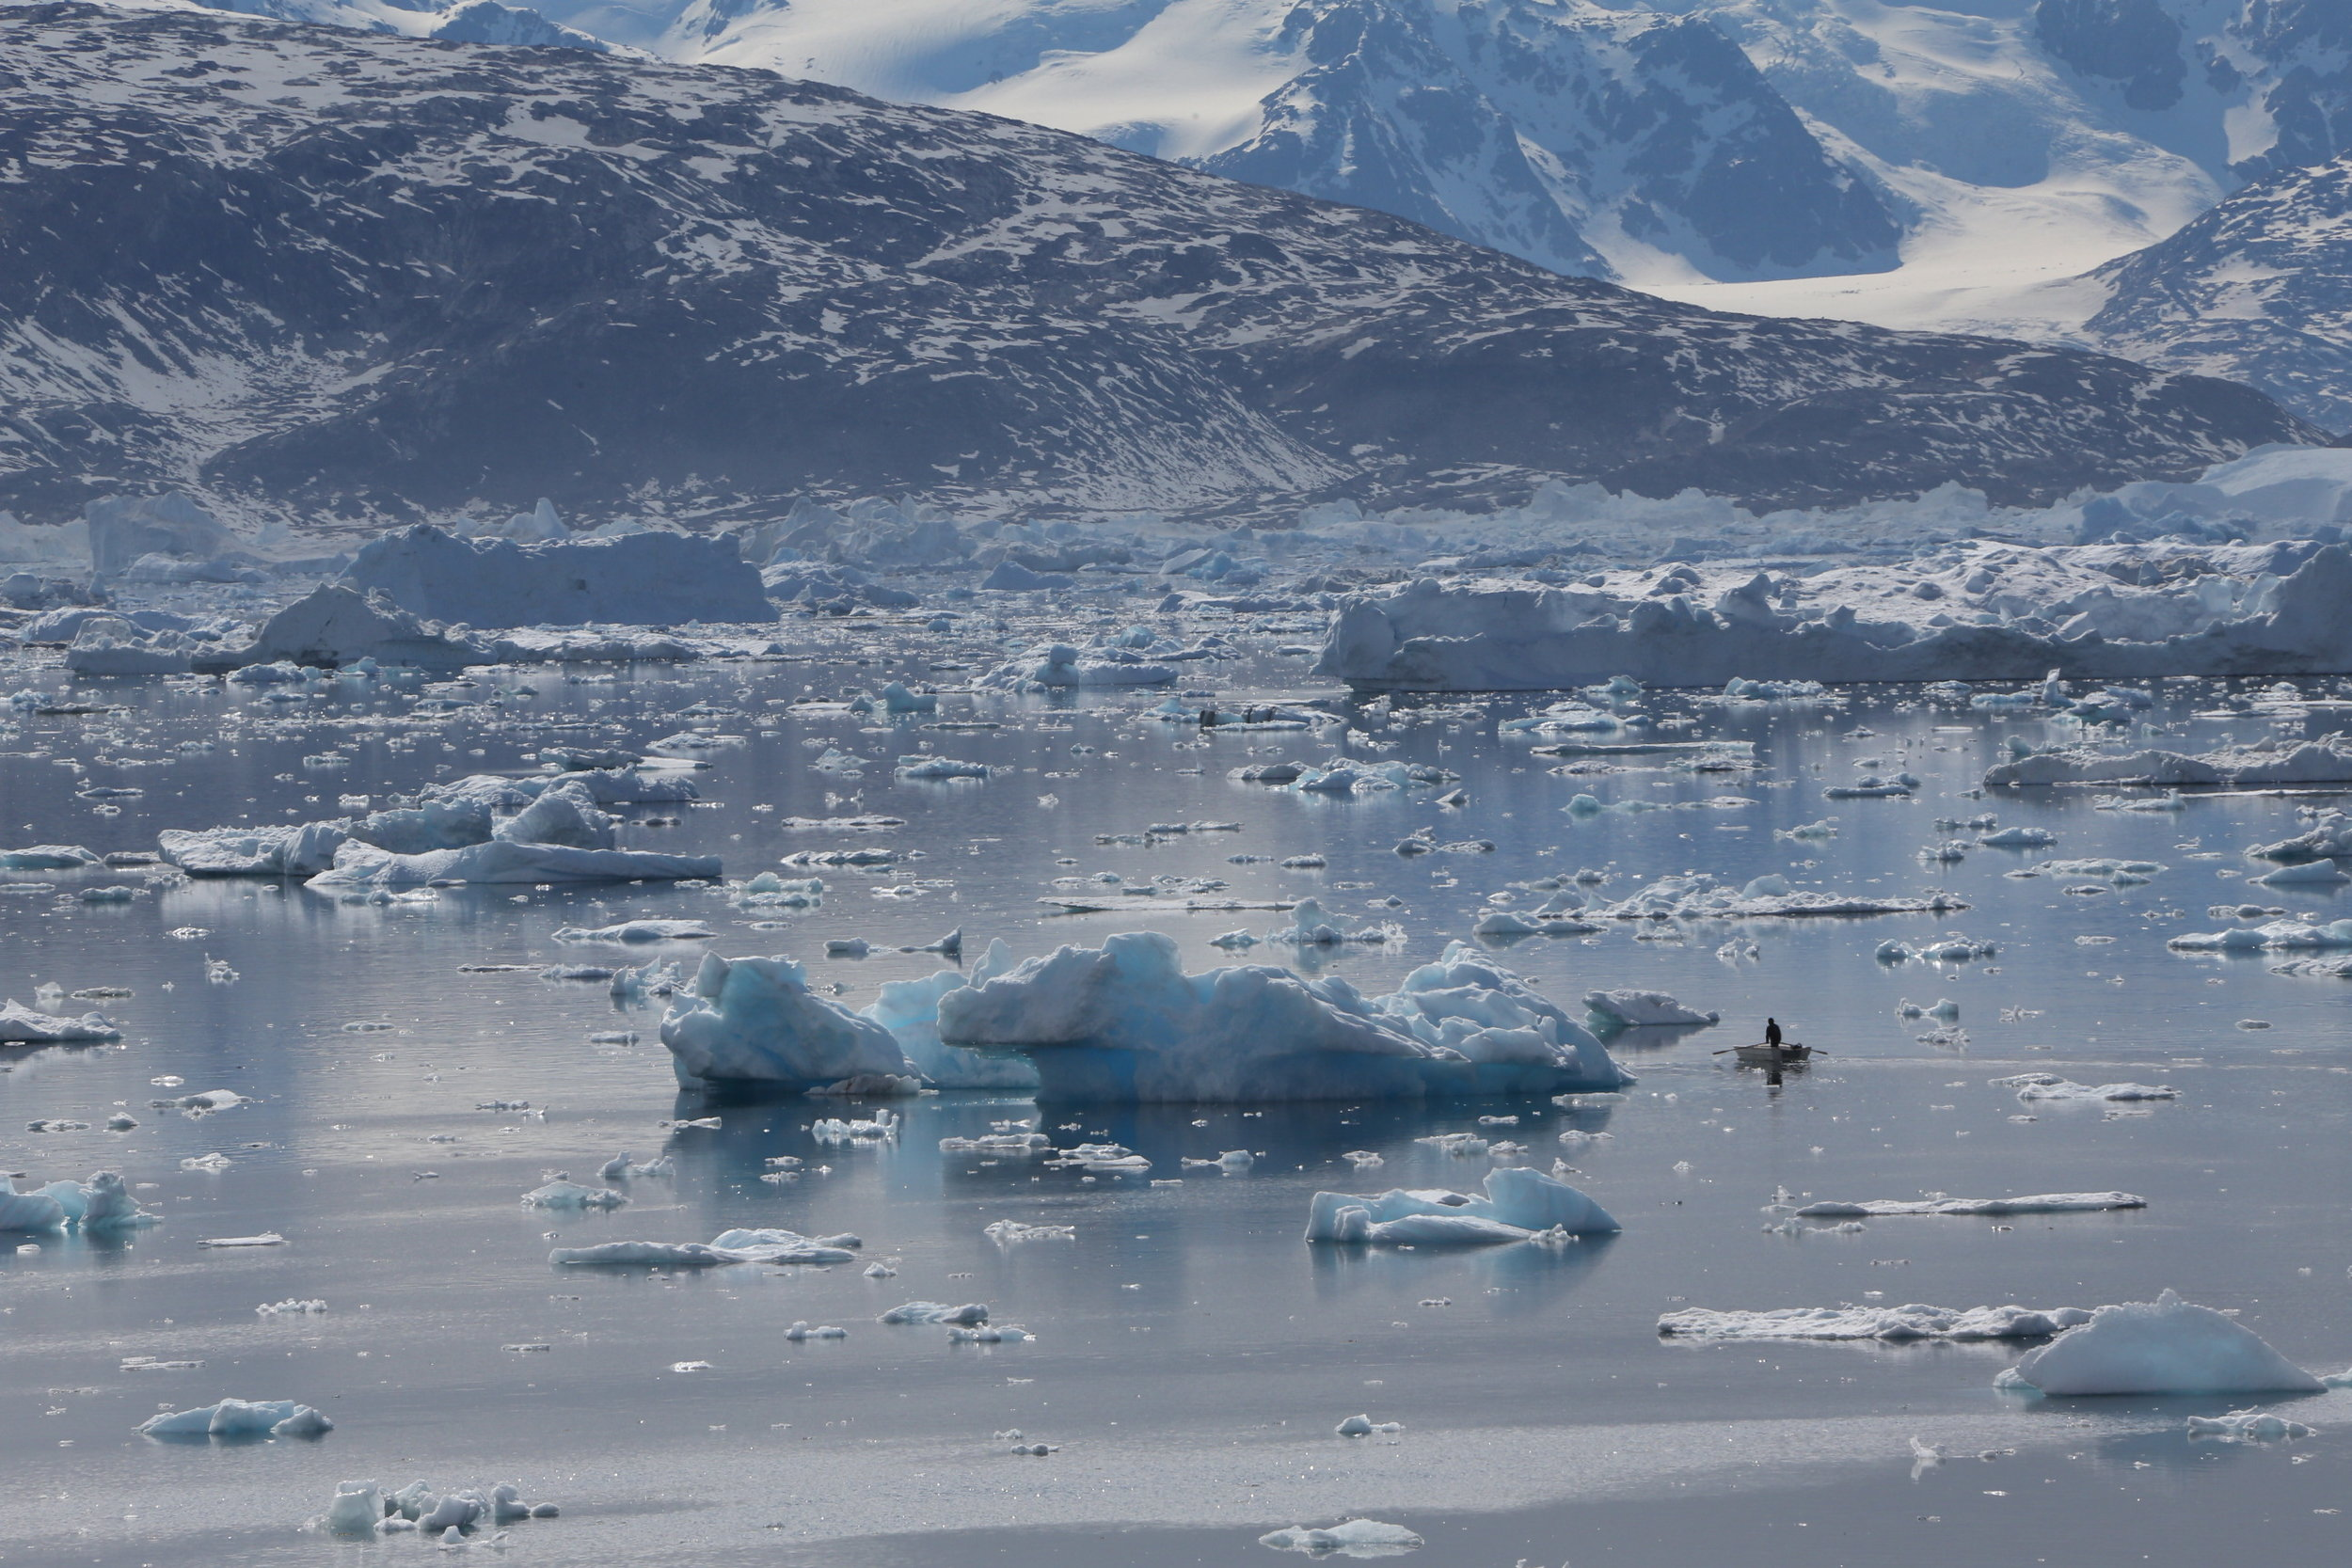 A local hunter takes his boat out amongst the icebergs in the ice fjord. Tinit, Greenland.